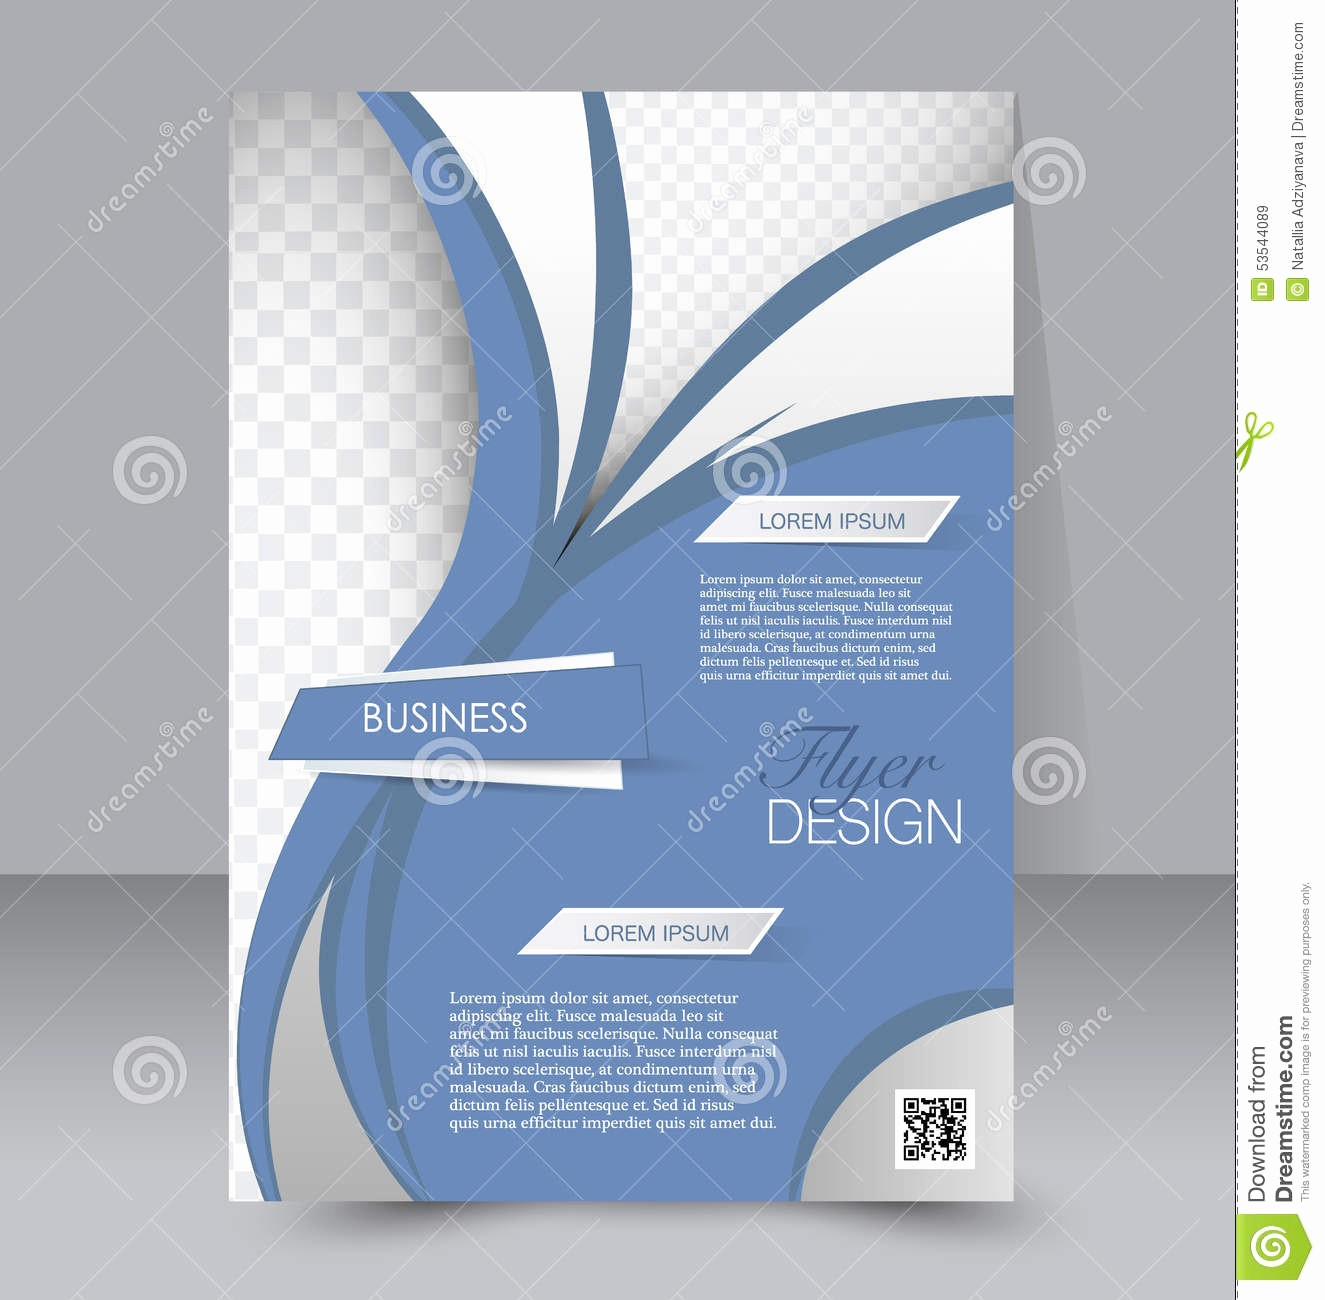 Templates for Flyers and Brochures New Flyer Template Business Brochure Editable A4 Poster